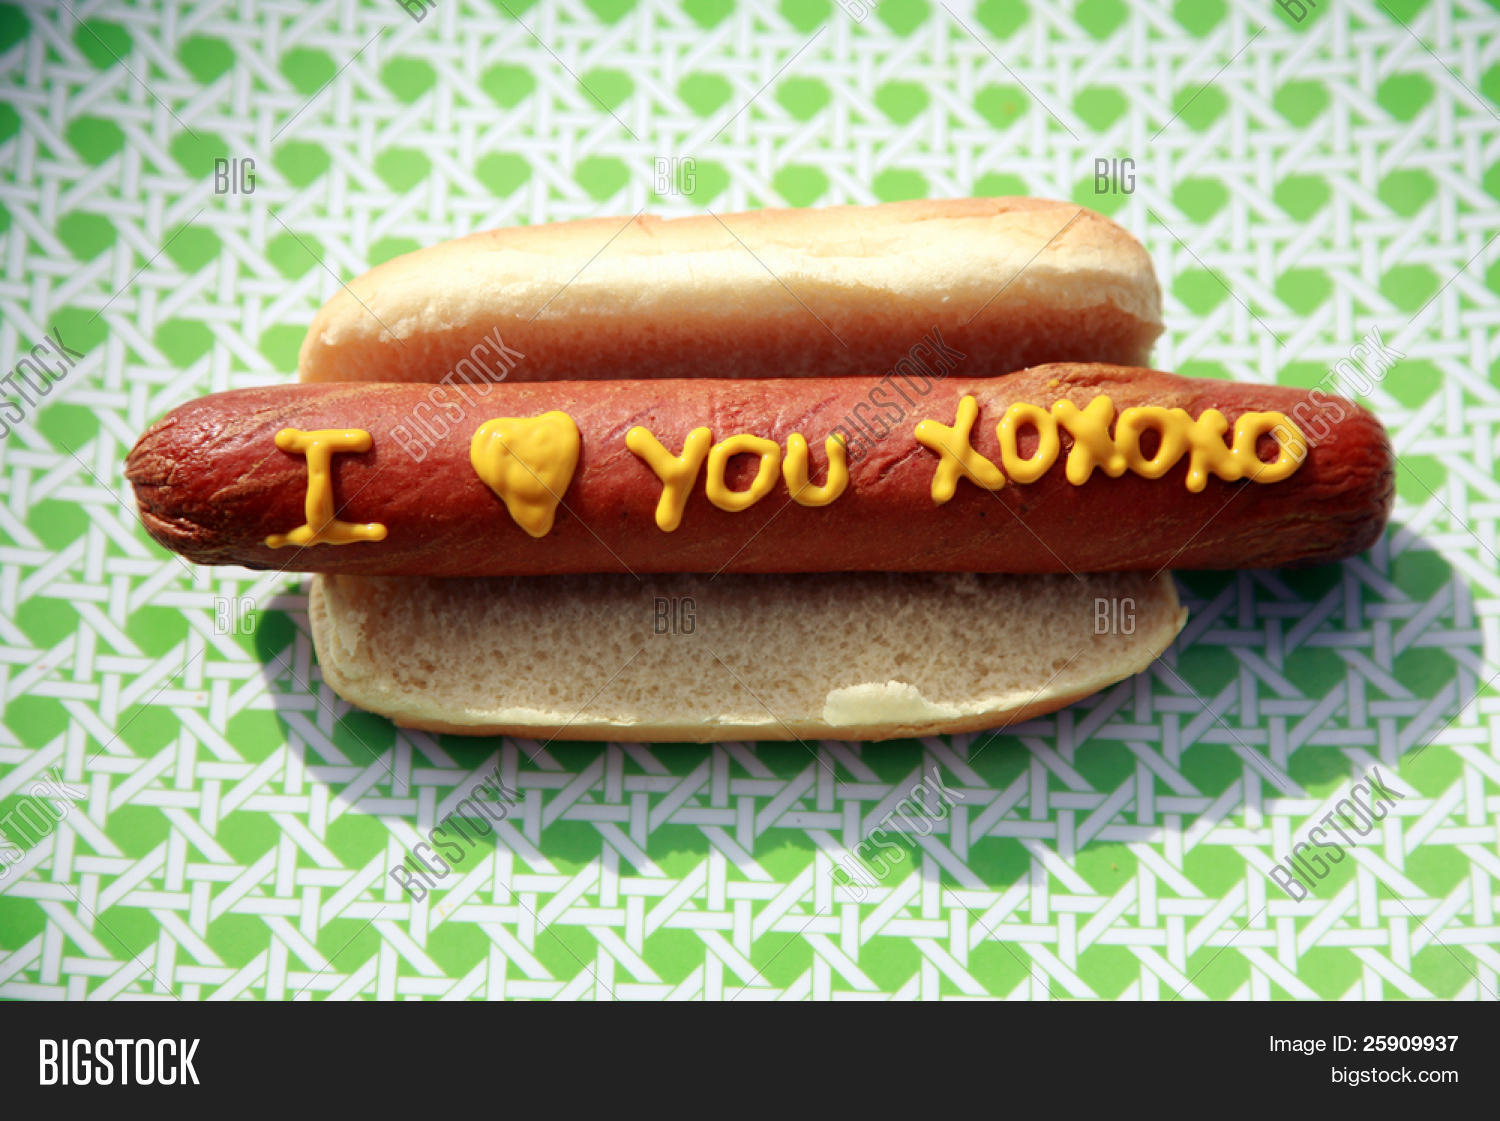 Hot Dogs Words Slogans Image & Photo (Free Trial) | Bigstock